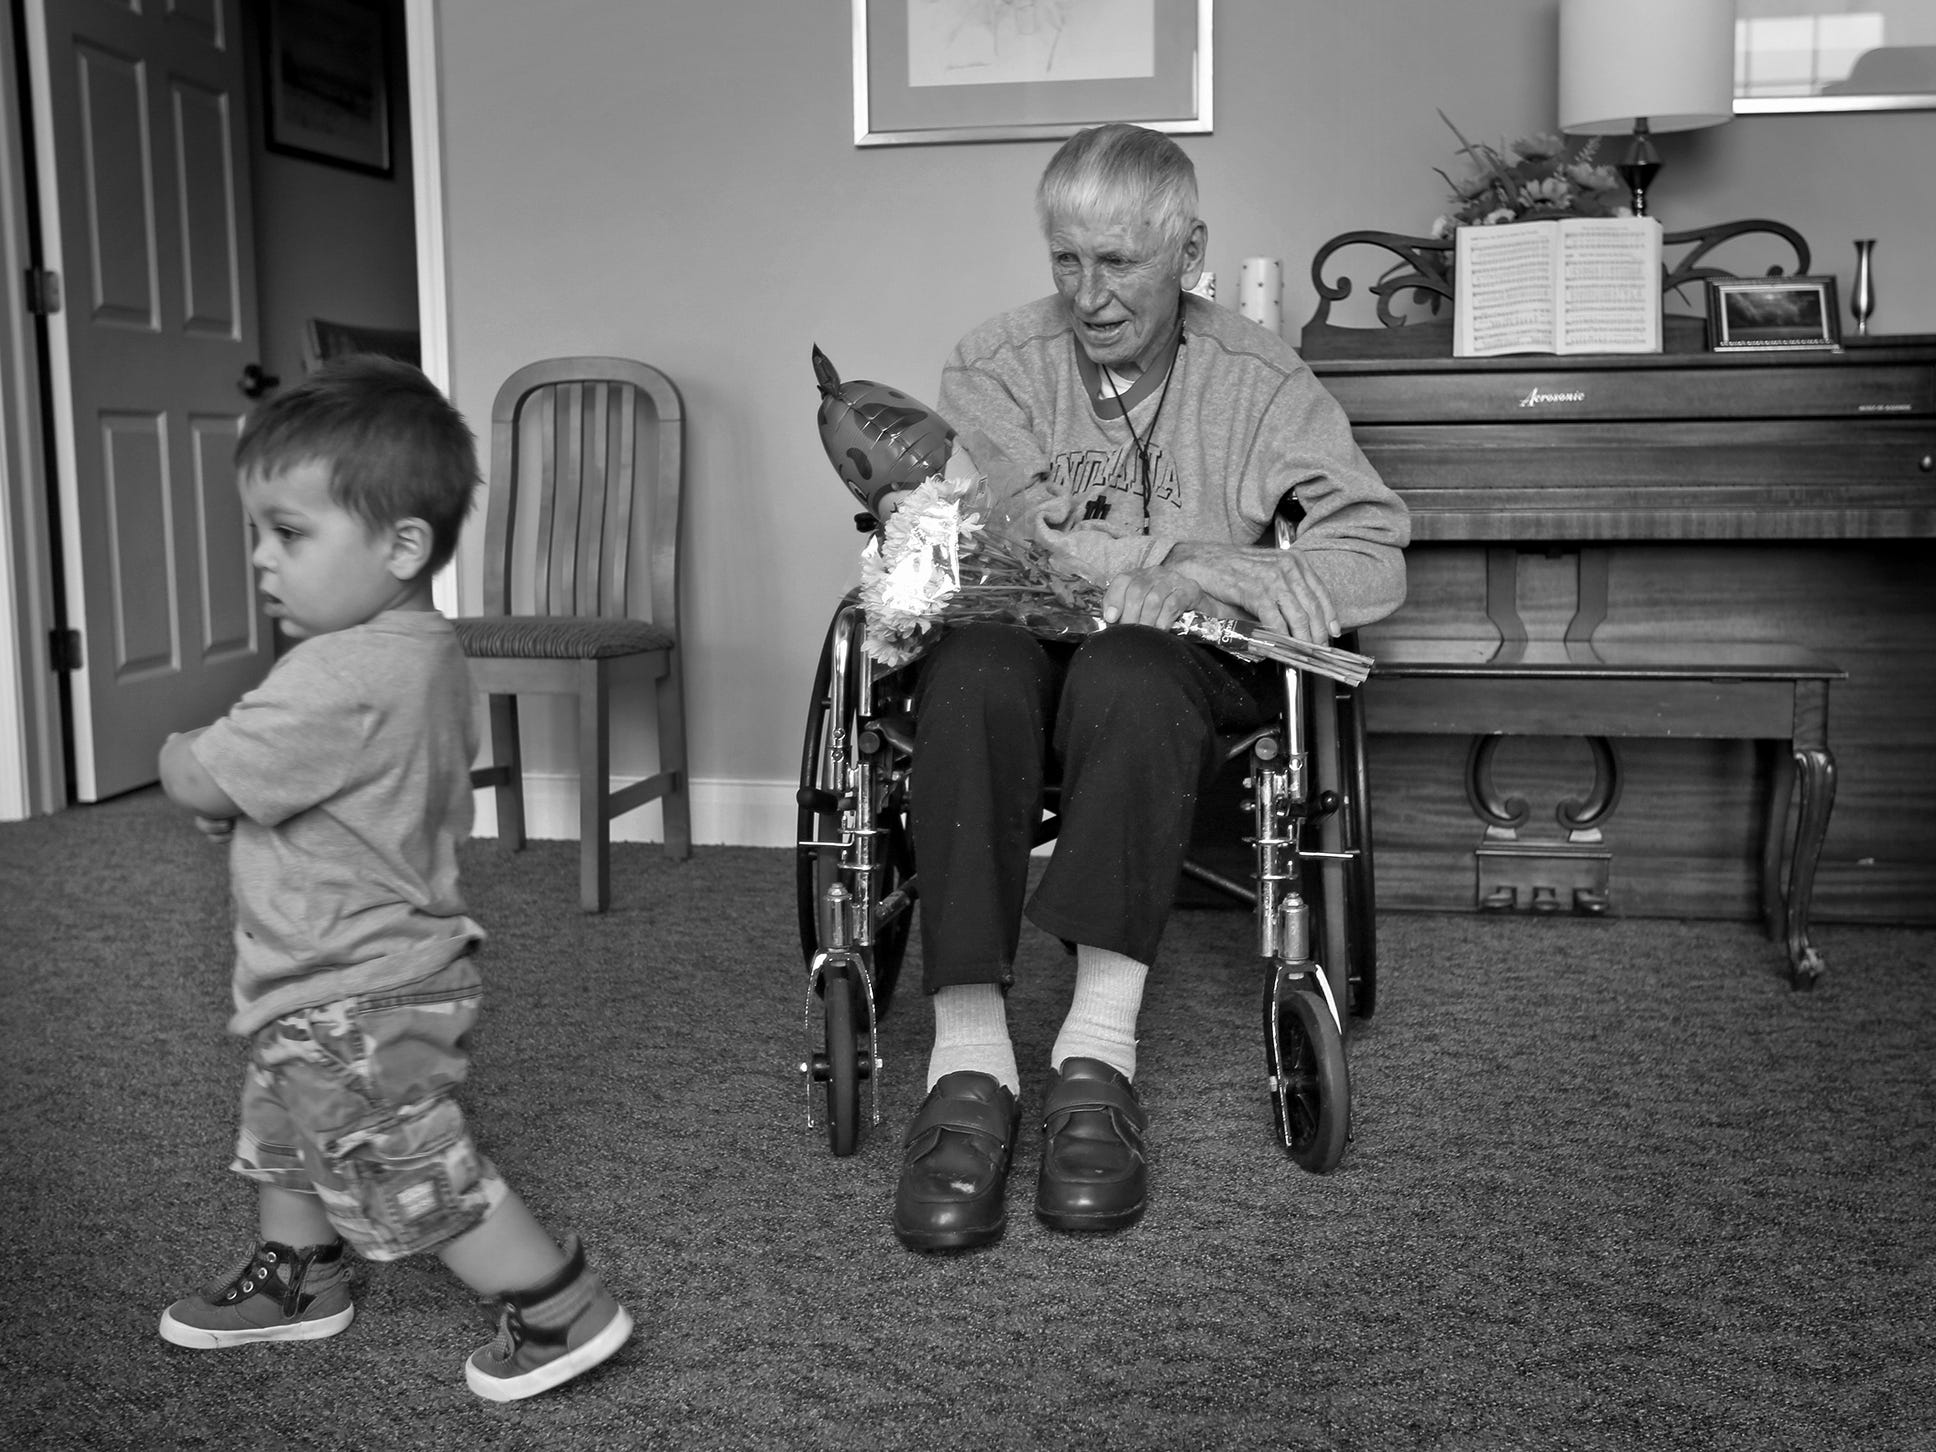 Dewey Logeland, right, smiles as Bennett Gonzalez runs by, as the Gonzalez family visits at the Abbie Hunt Bryce Home, Friday, April 27, 2018.  The home offers hospice for the dying poor.